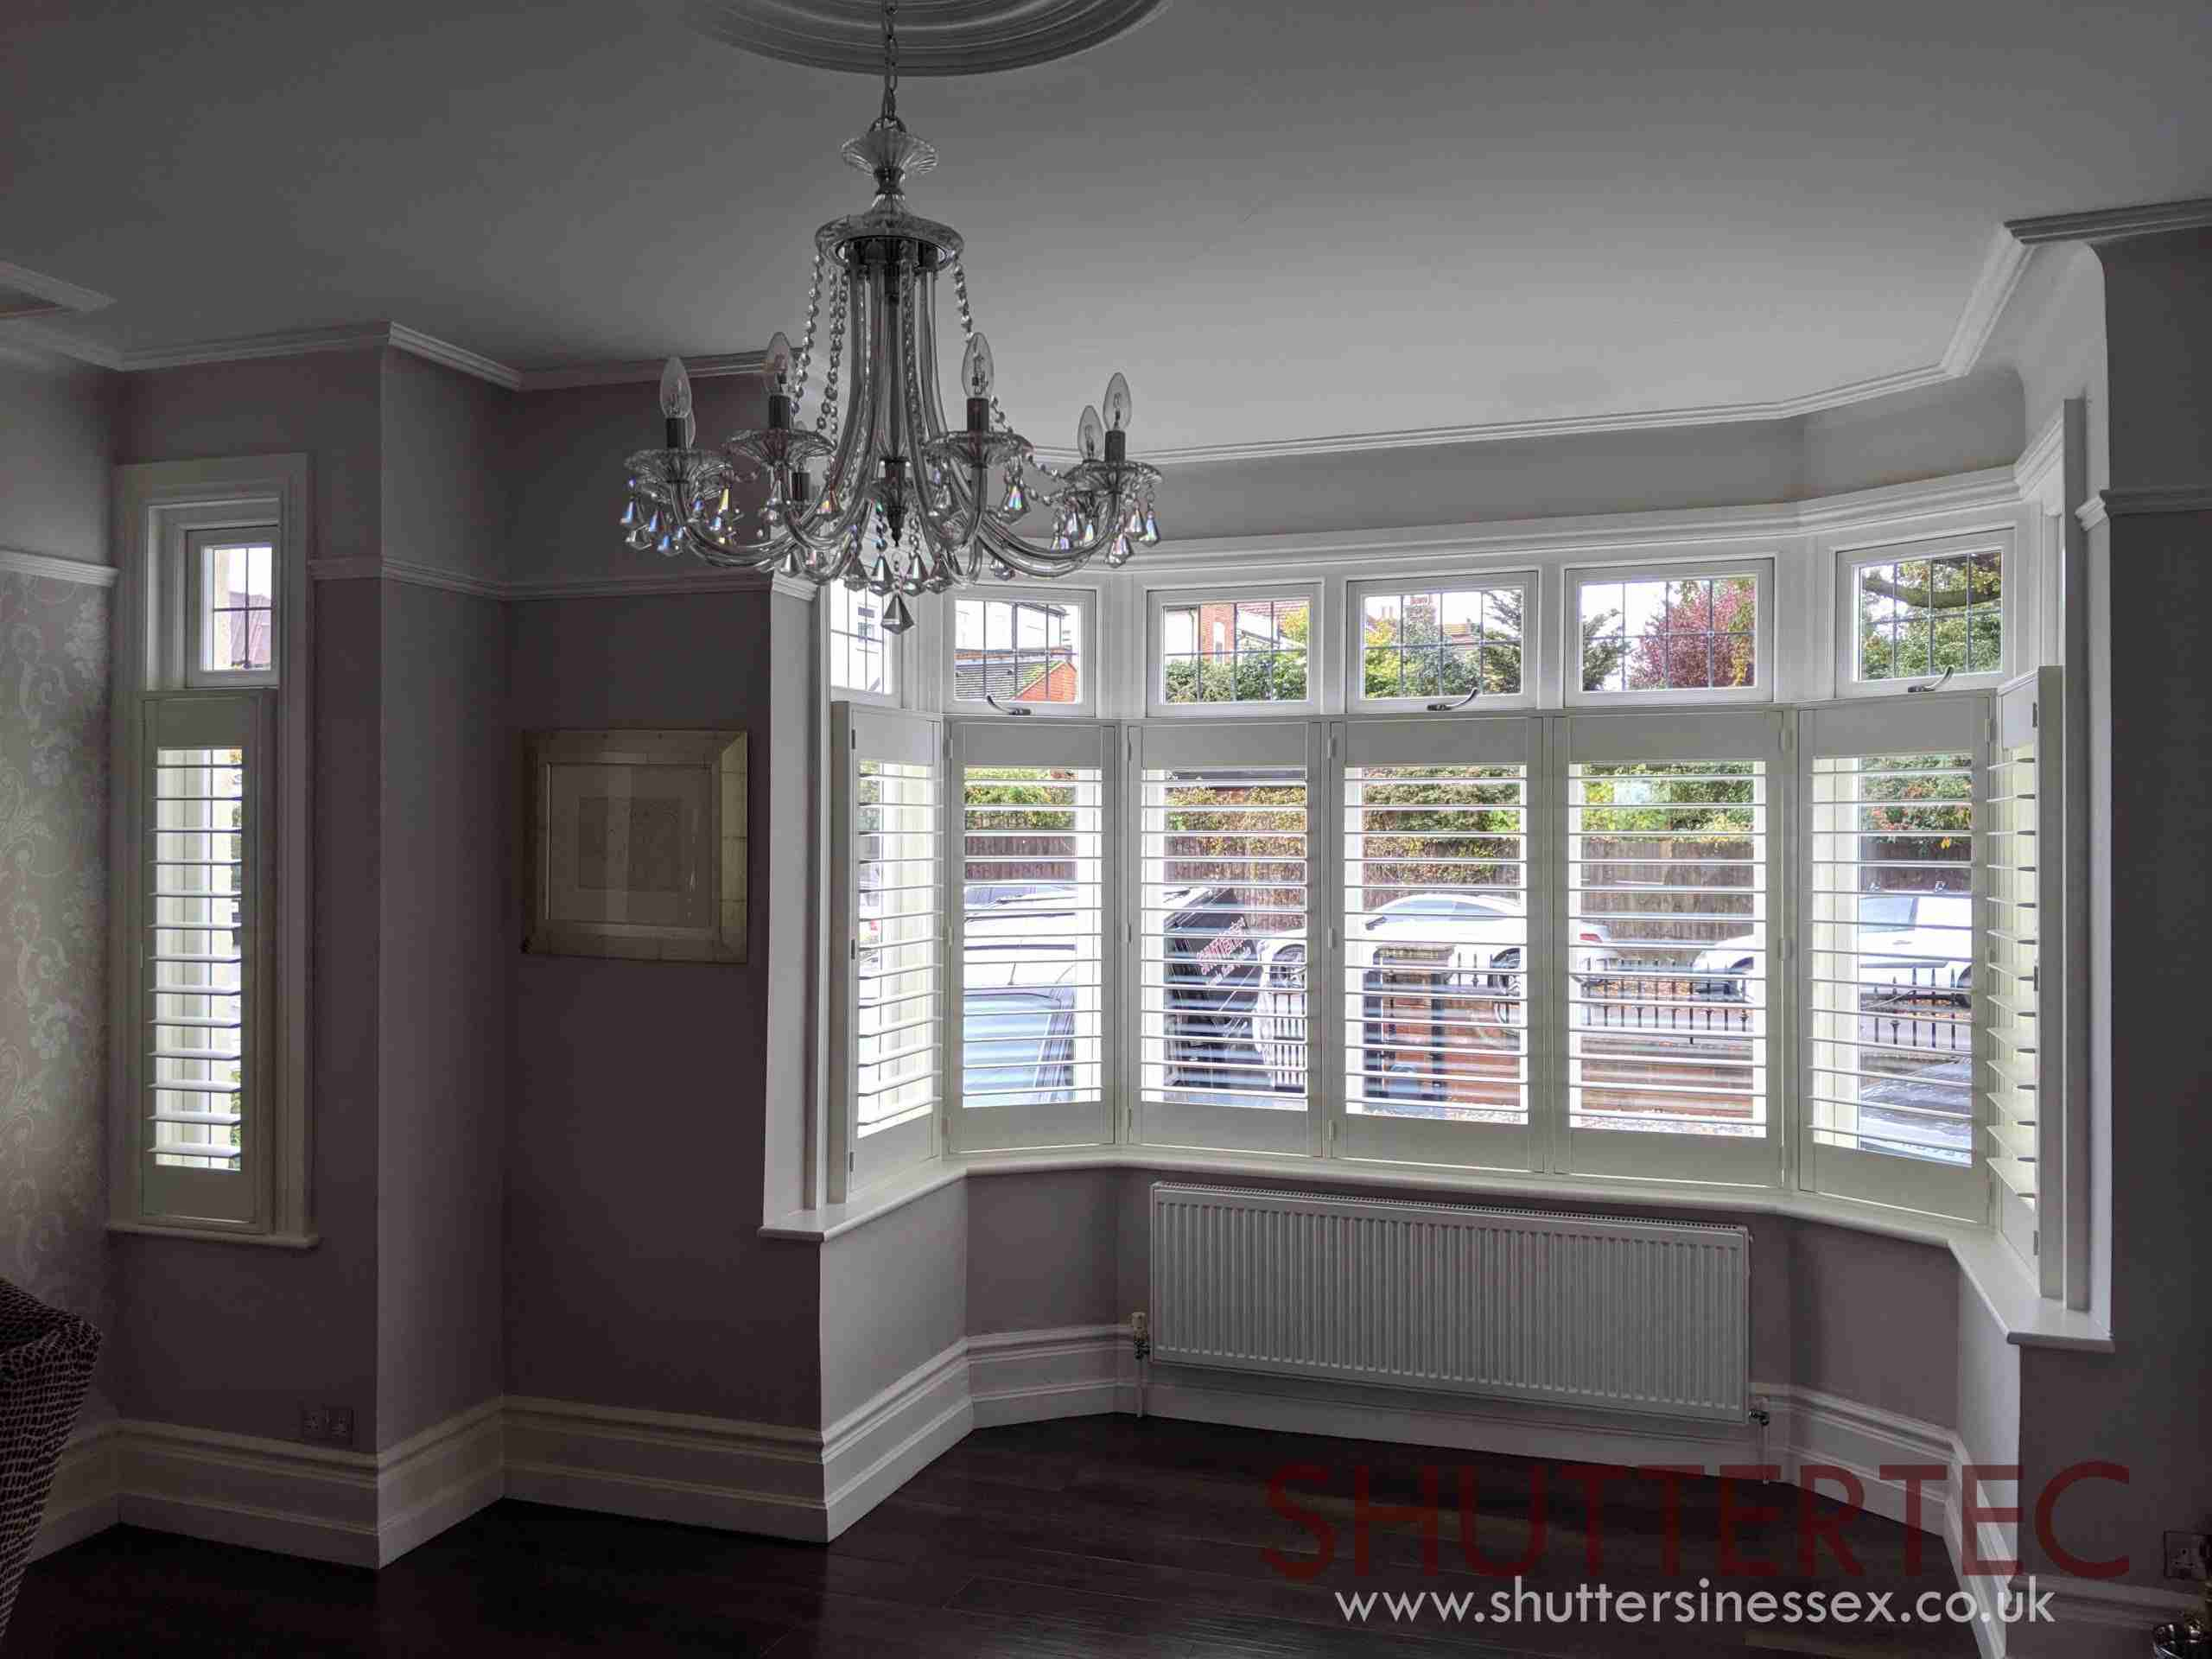 title graphic for Shuttertec blog about pros and cons of cafe style shutters